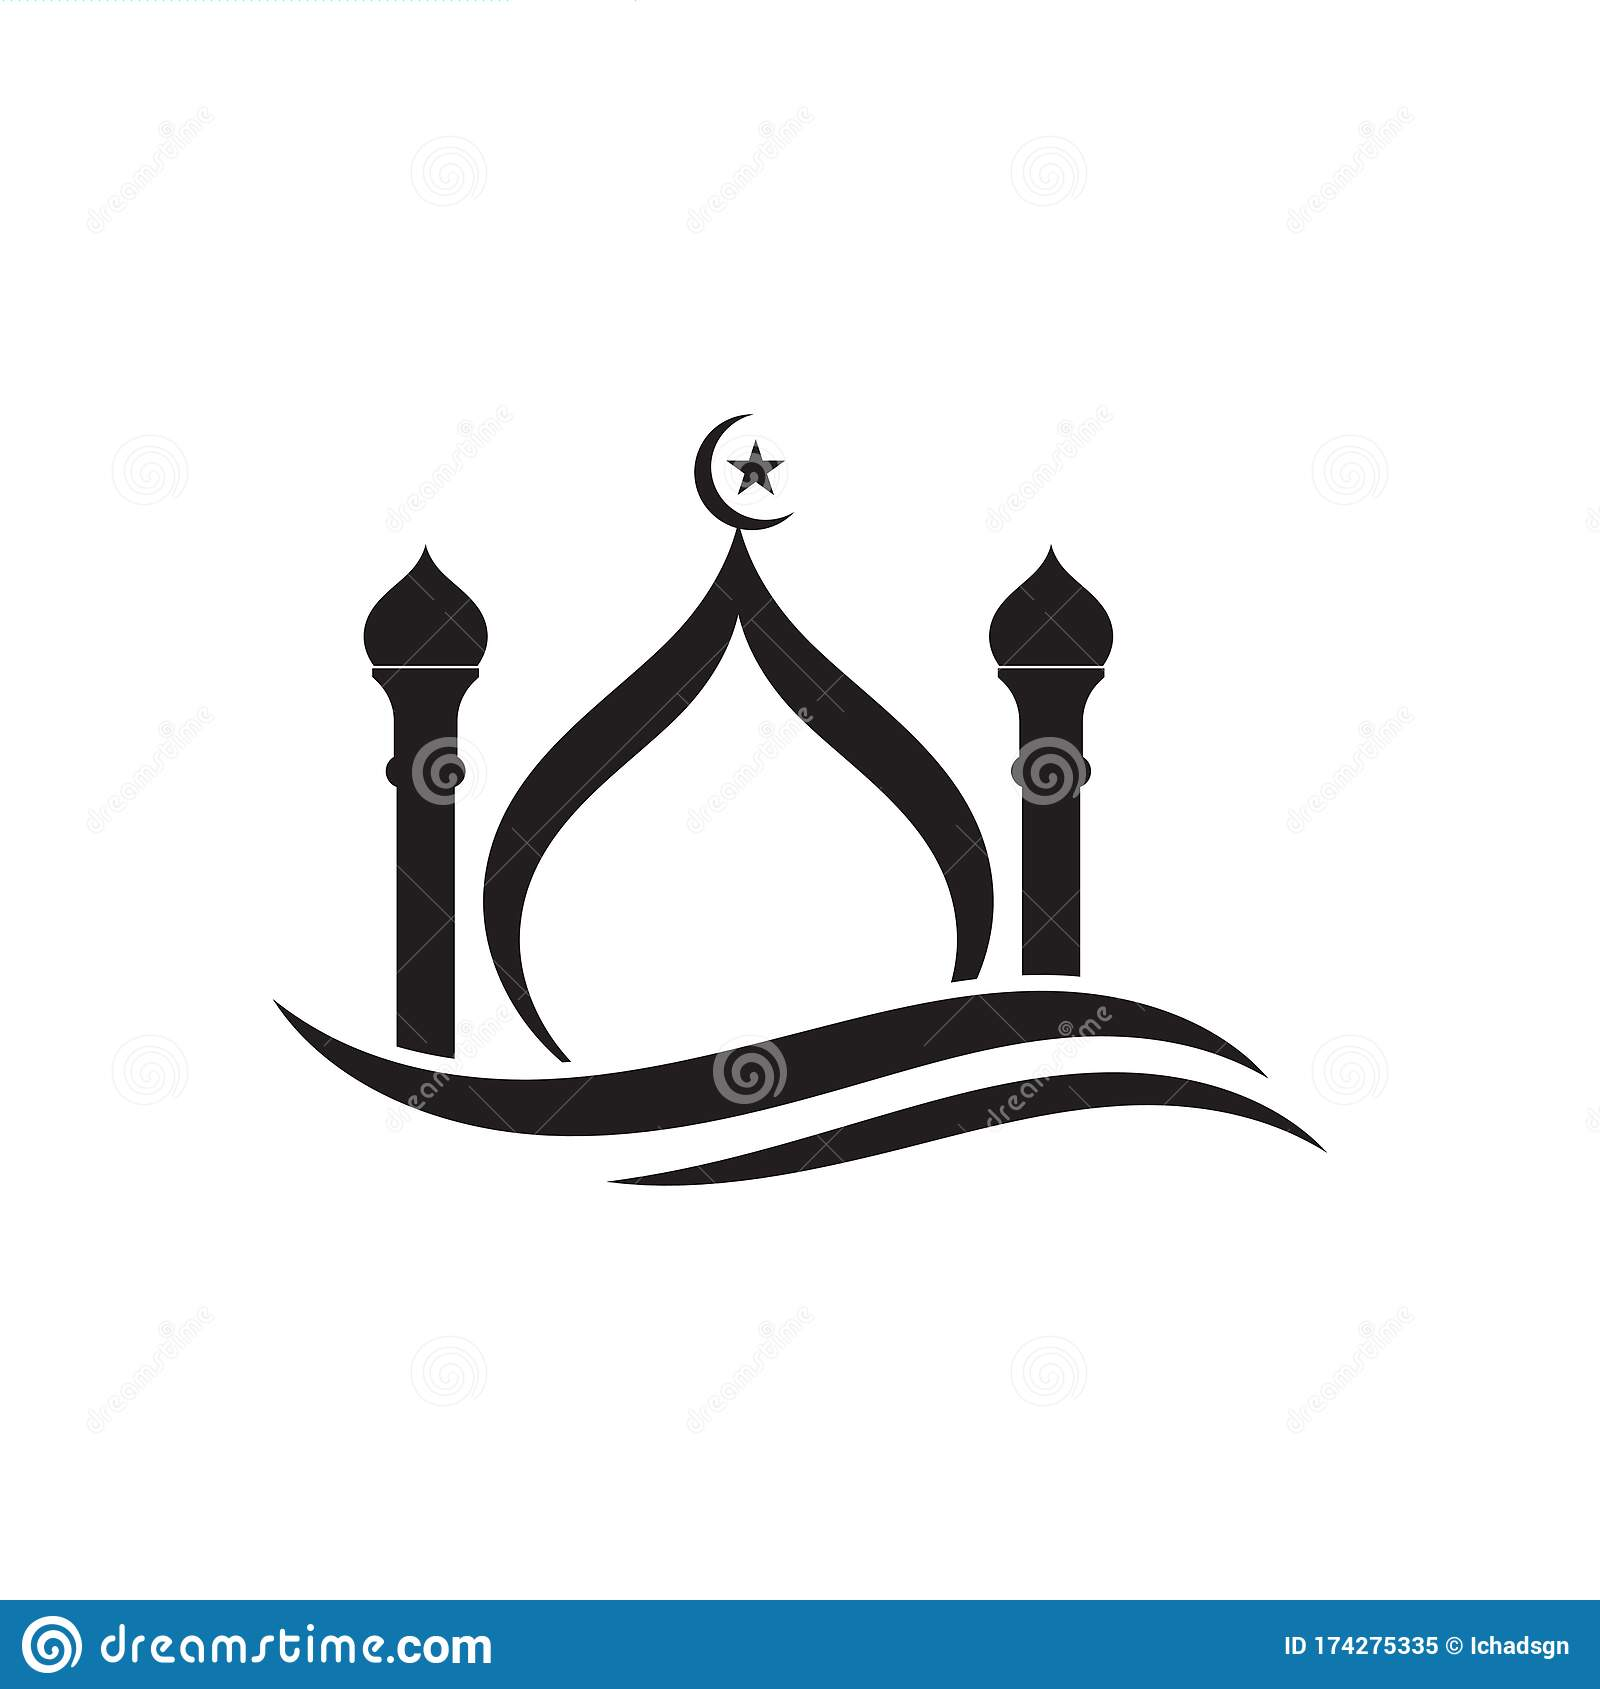 islamic mosque logo vector icon stock vector illustration of islam muslim 174275335 dreamstime com